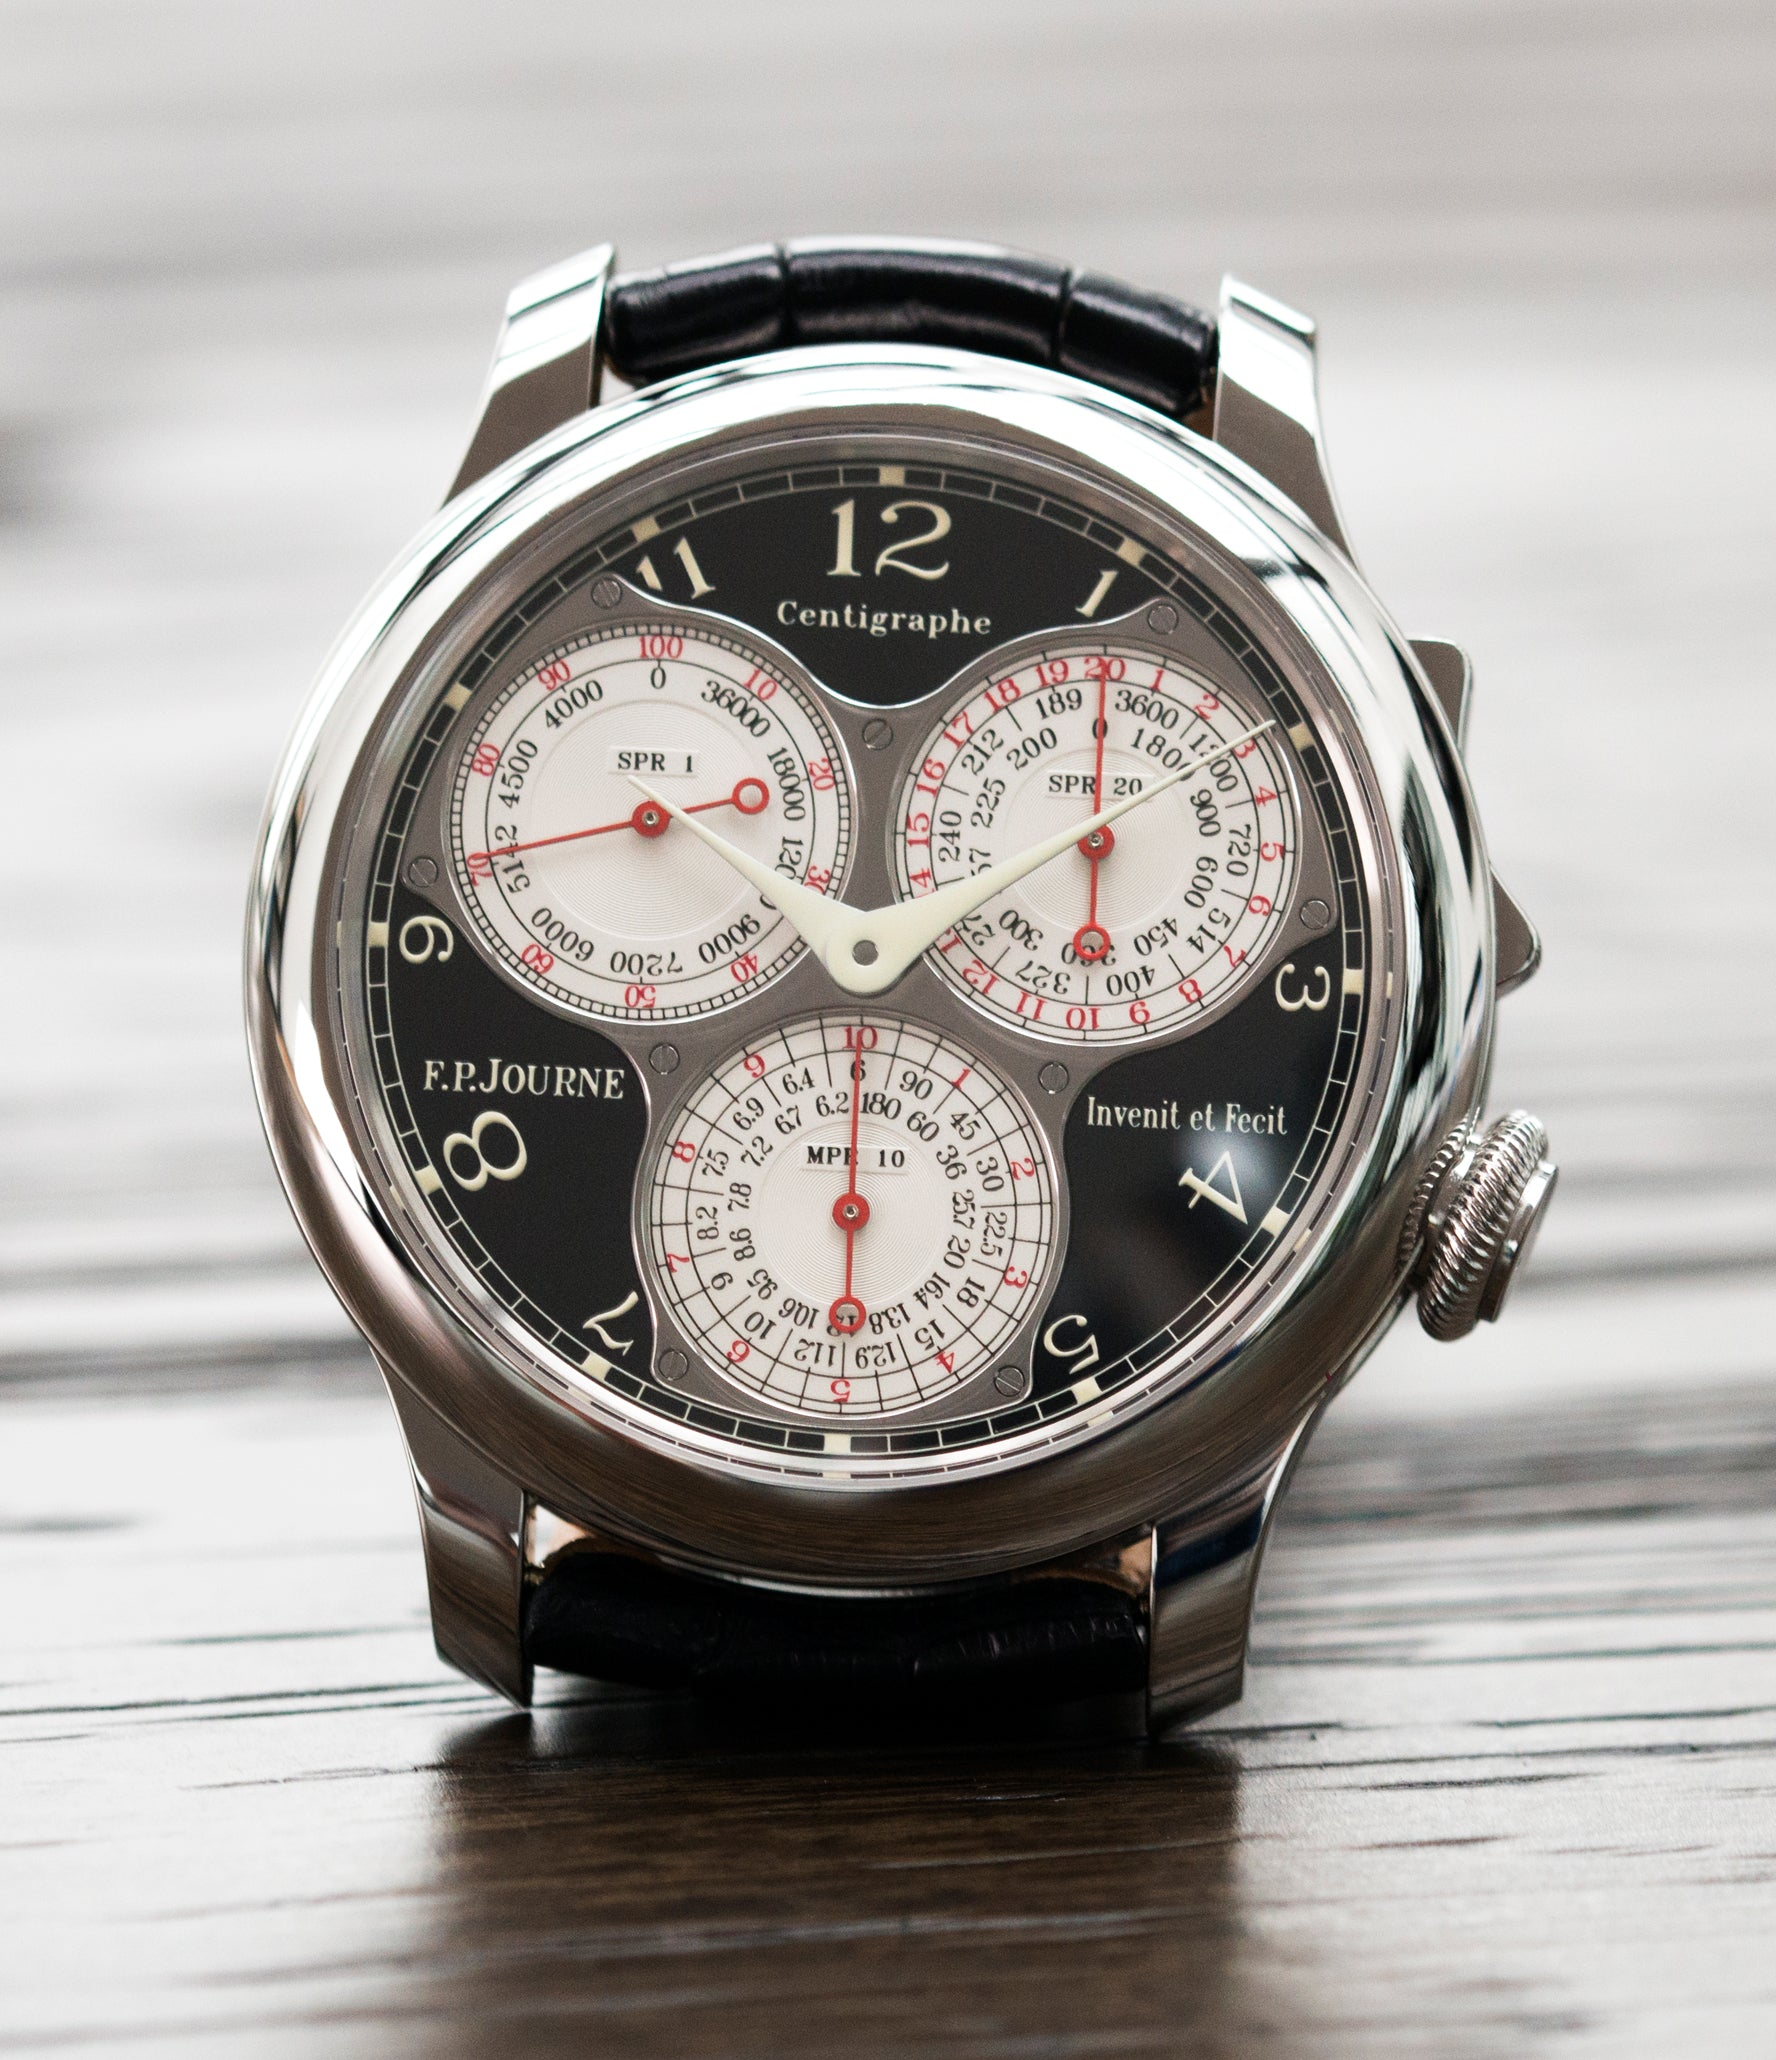 selling F. P. Journe Centigraphe Souverain Black Label 40 mm platinum pre-owned rare watch for sale online at A Collected Man London approved retailer of independent watchmakers